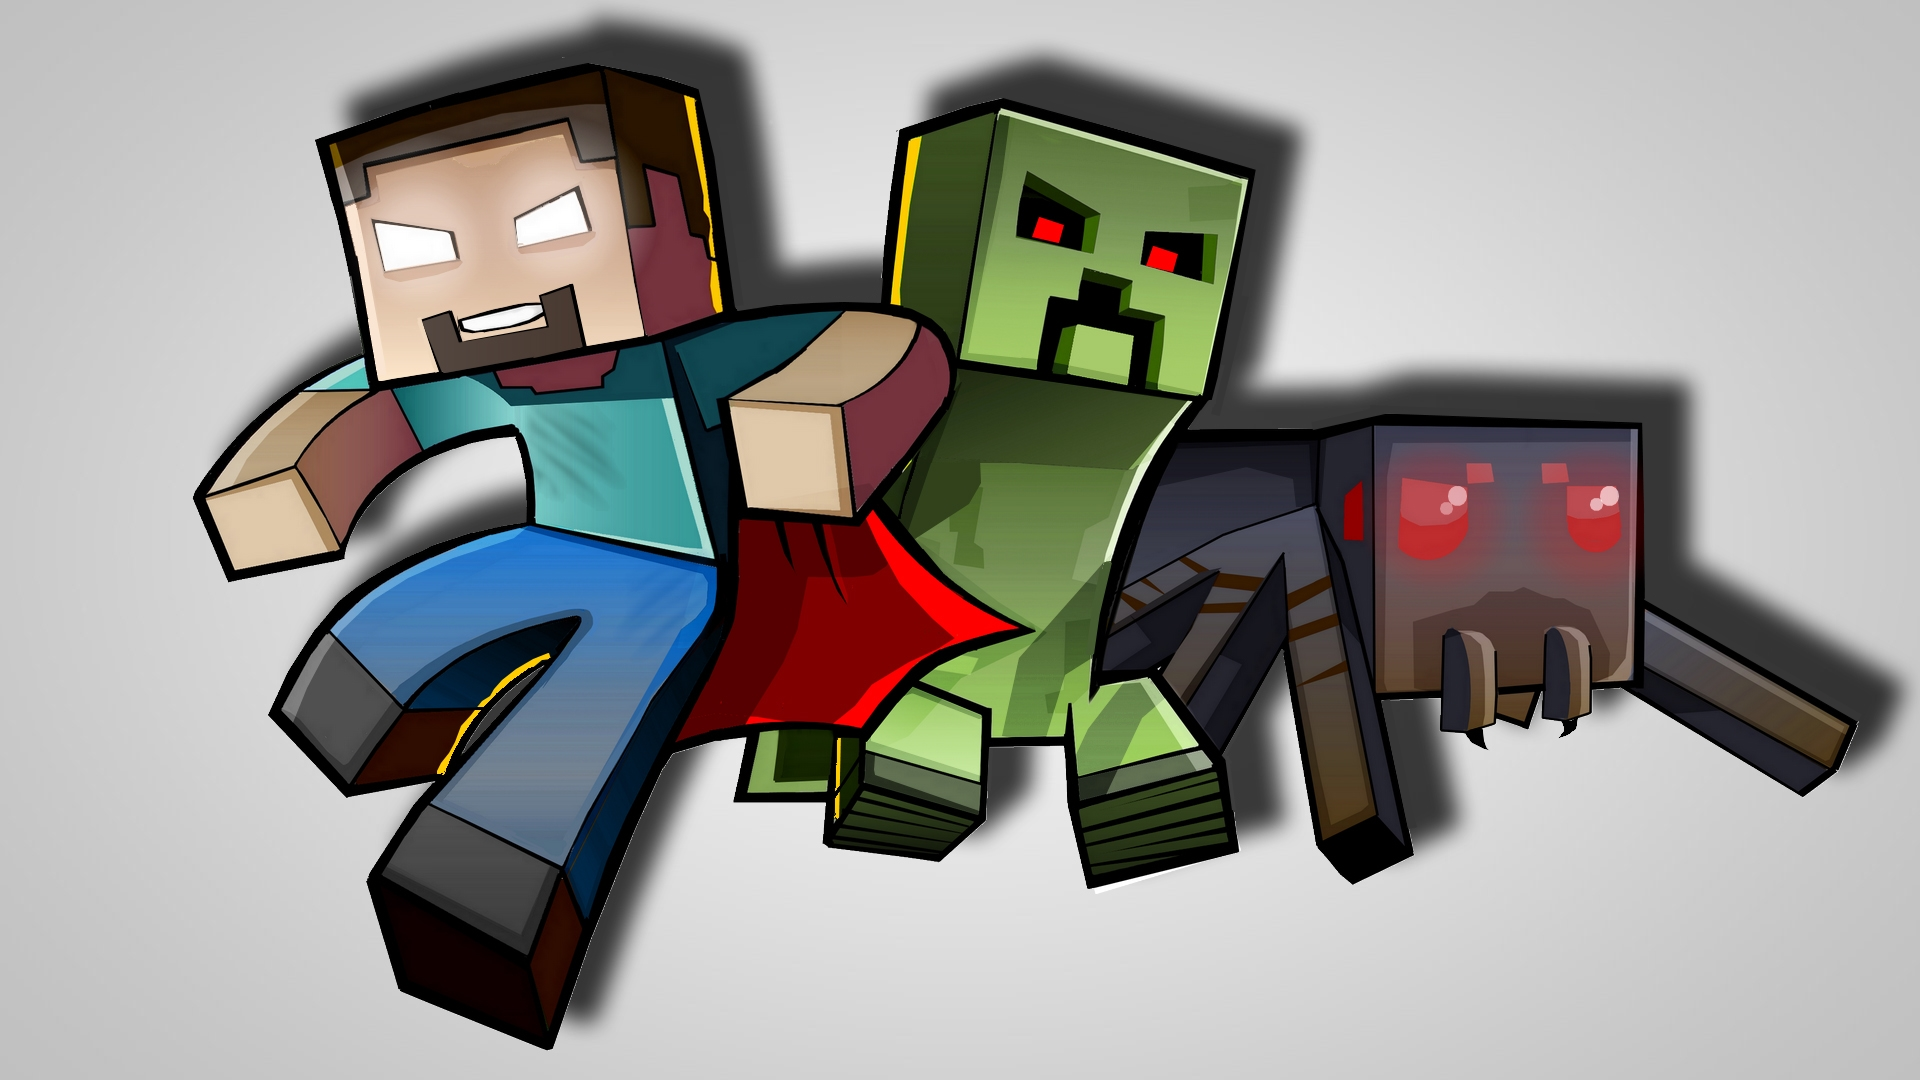 minecraft 1920x1200 wallpaper high - photo #5